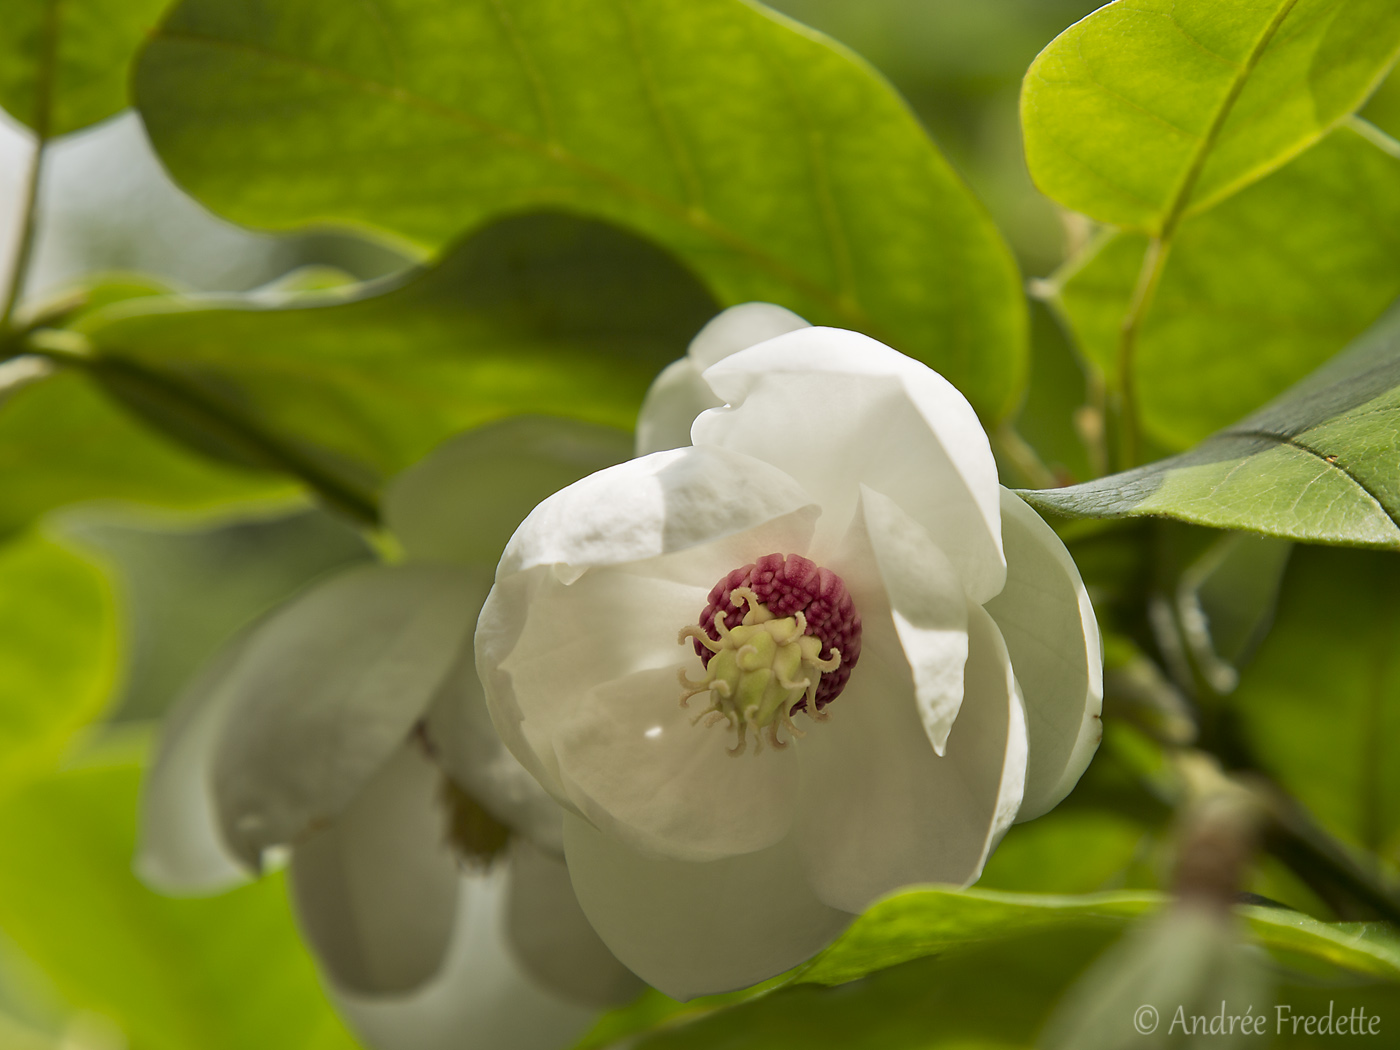 Magnolia sieboldii. Photo by Andrée Fredette